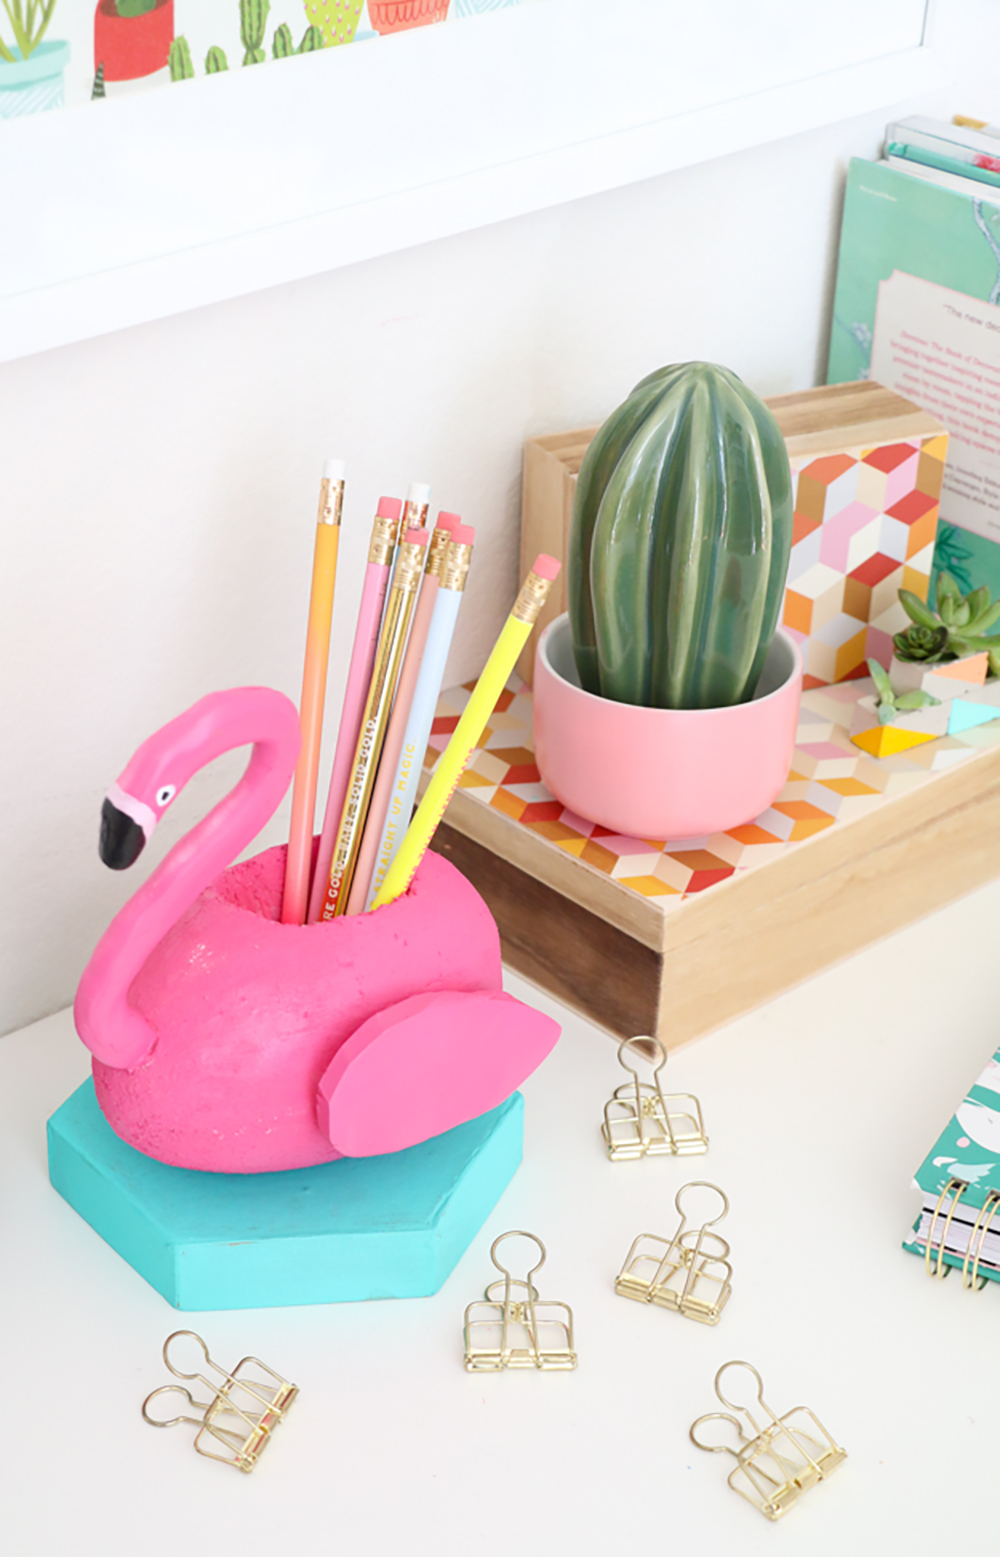 DIY Flamingo pencil holder - Decorate your home with flamingos | Aliz's Wonderland